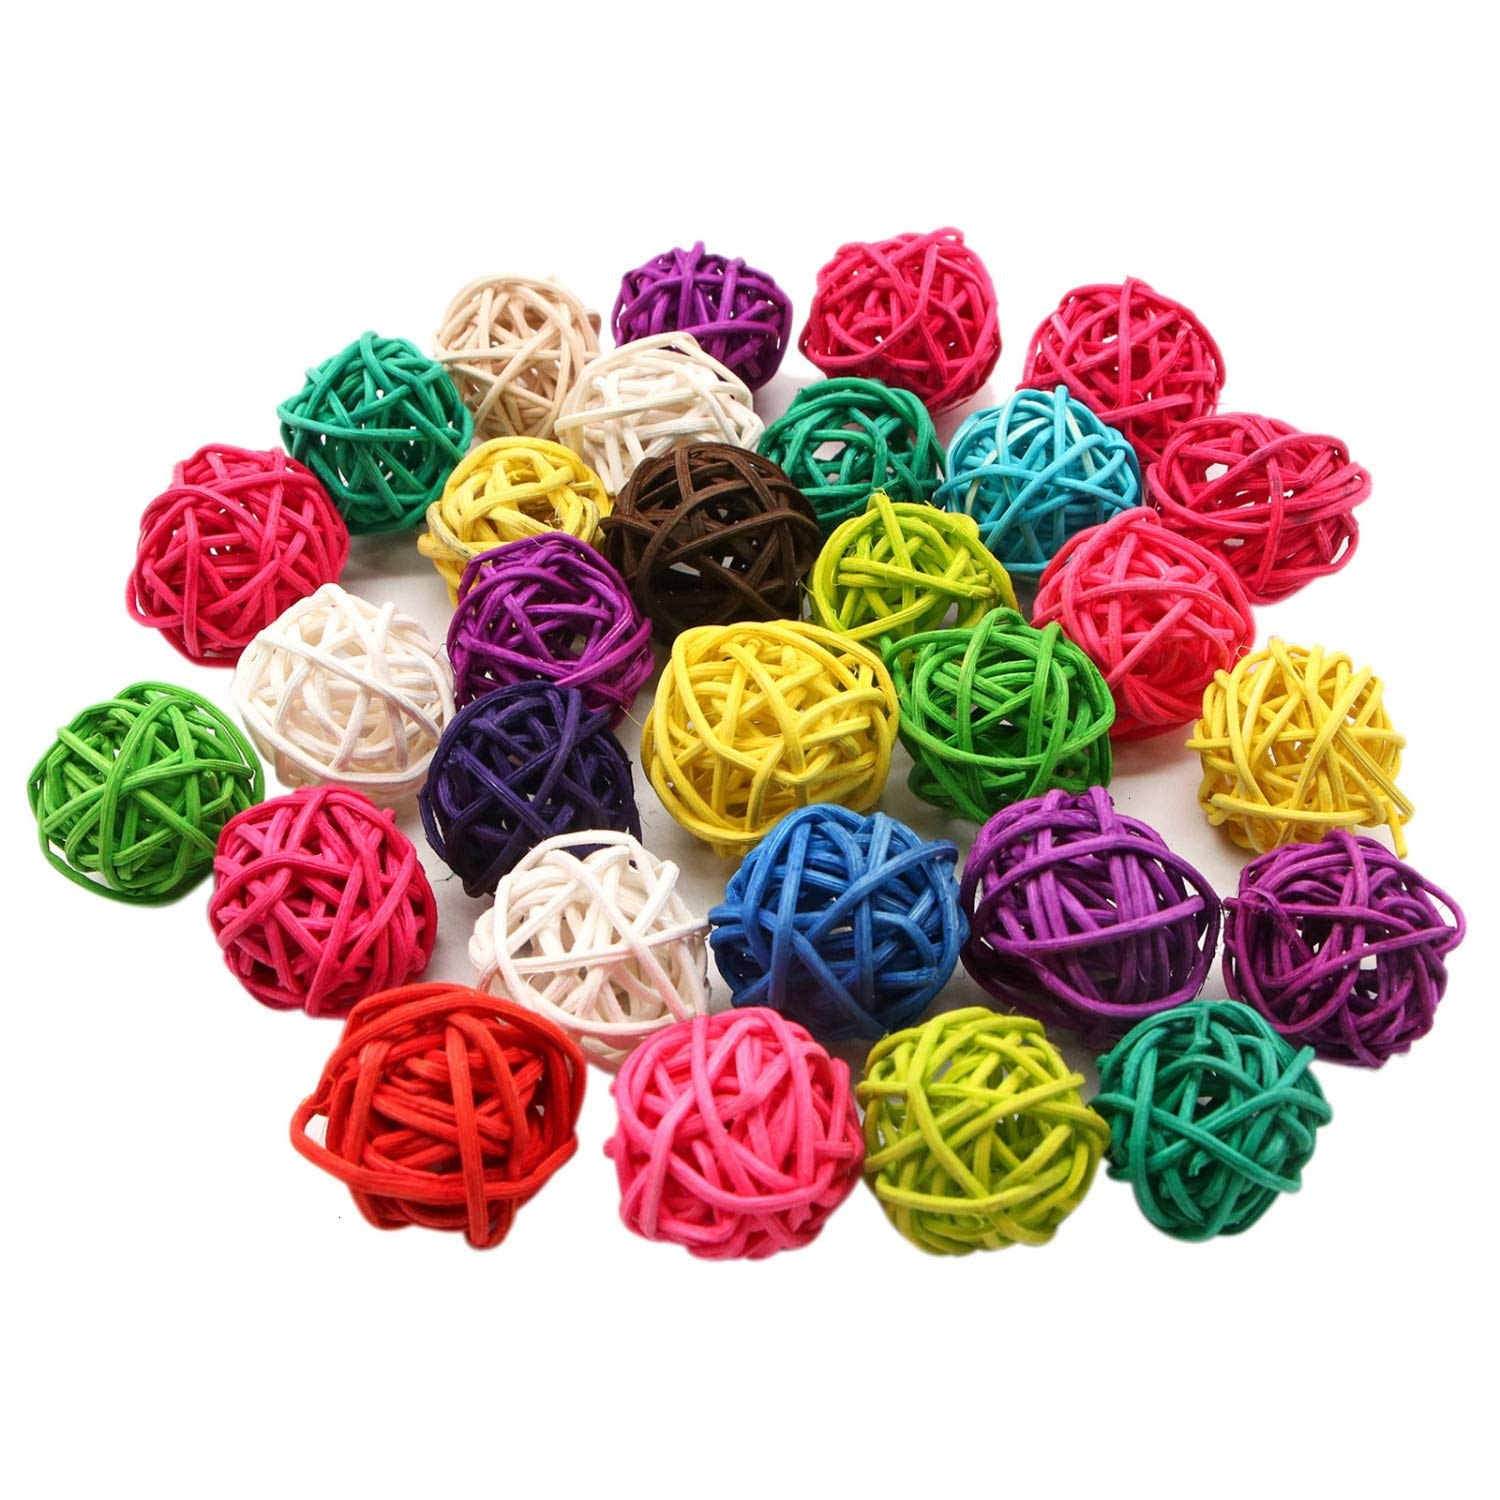 JETEHO 30 Pack Birds Toy Rattan Toy Balls Birdsor Parrot Budgie Parakeet Chewing Toys Pet Bird Chew Toy Table Wedding Party Decorative Crafts Hanging DIY Accessories